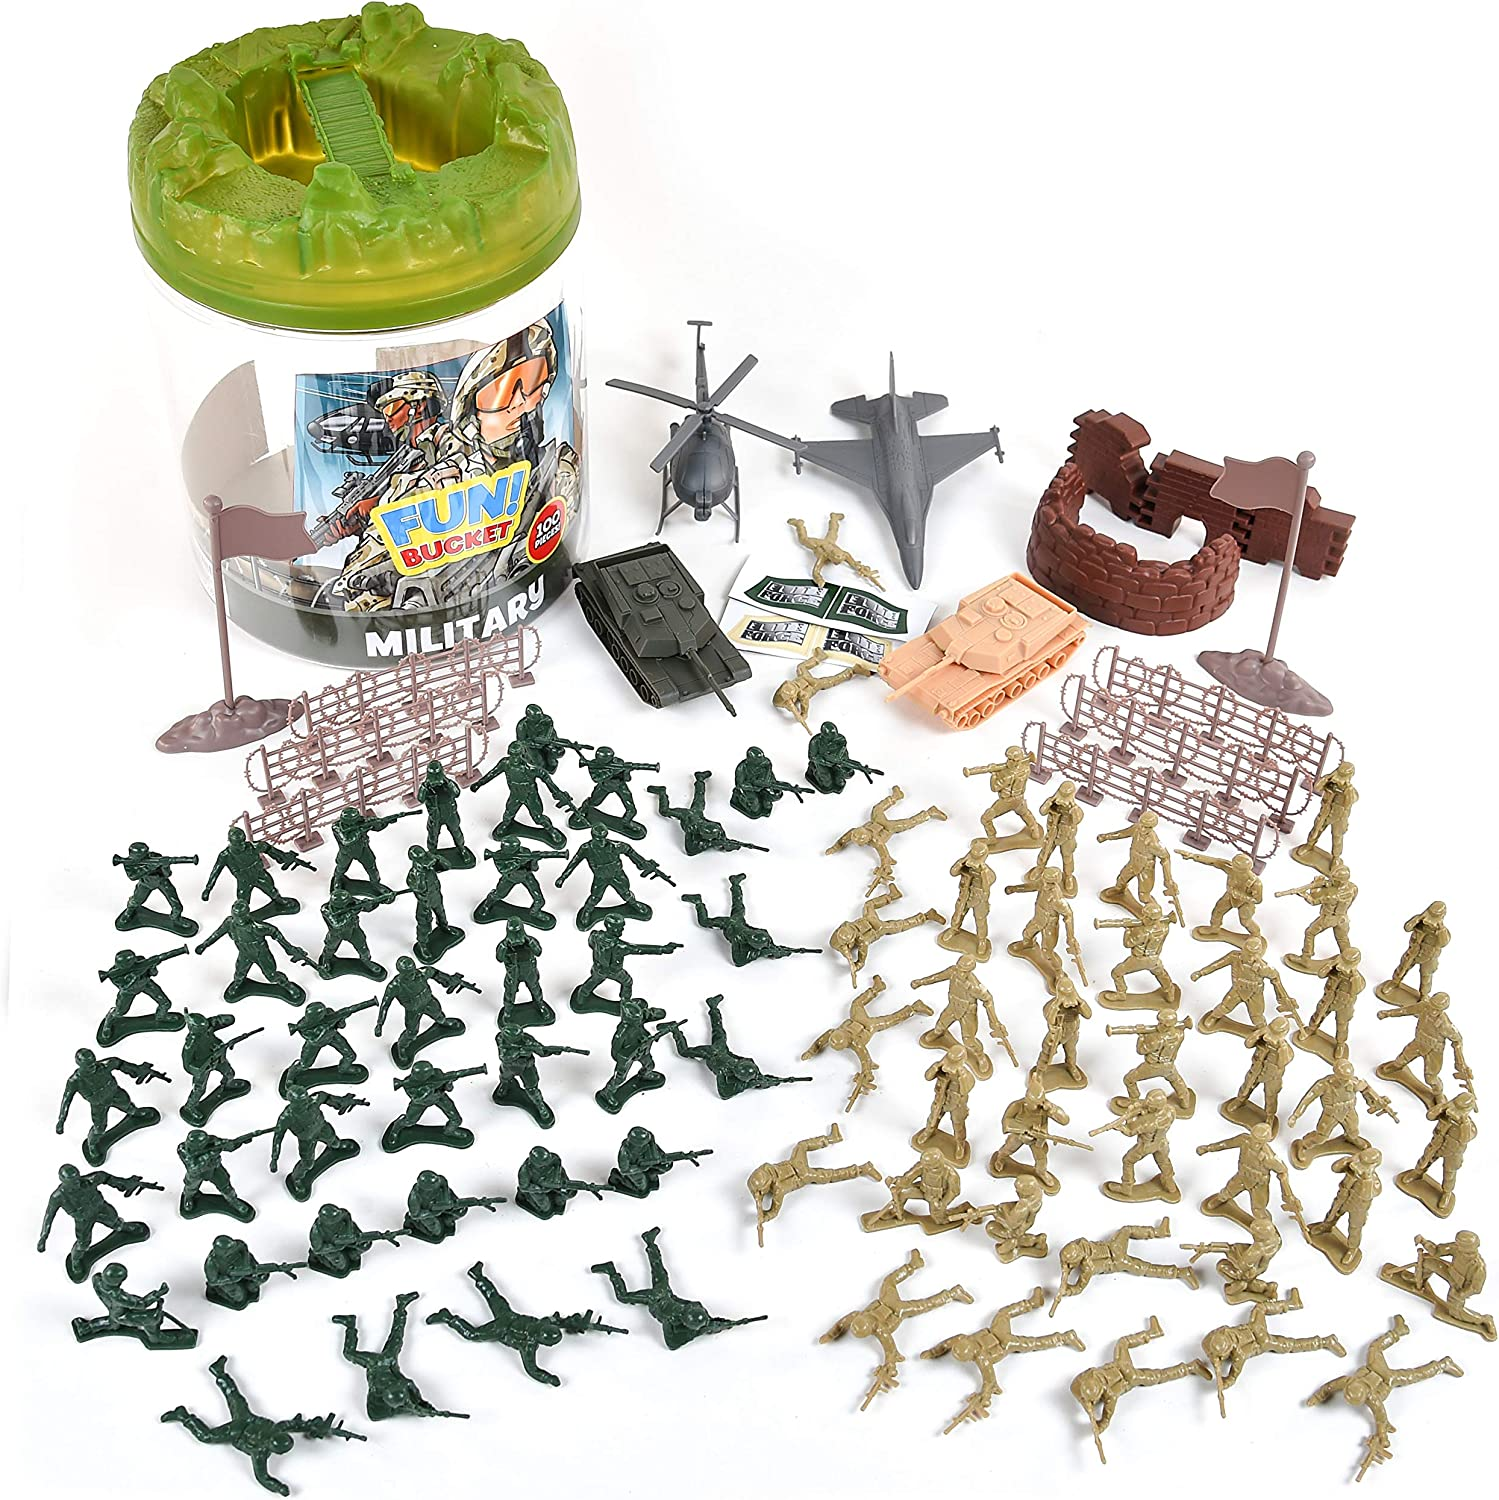 Party Favors for Boys 100 Pc Army Dinosaur Multi